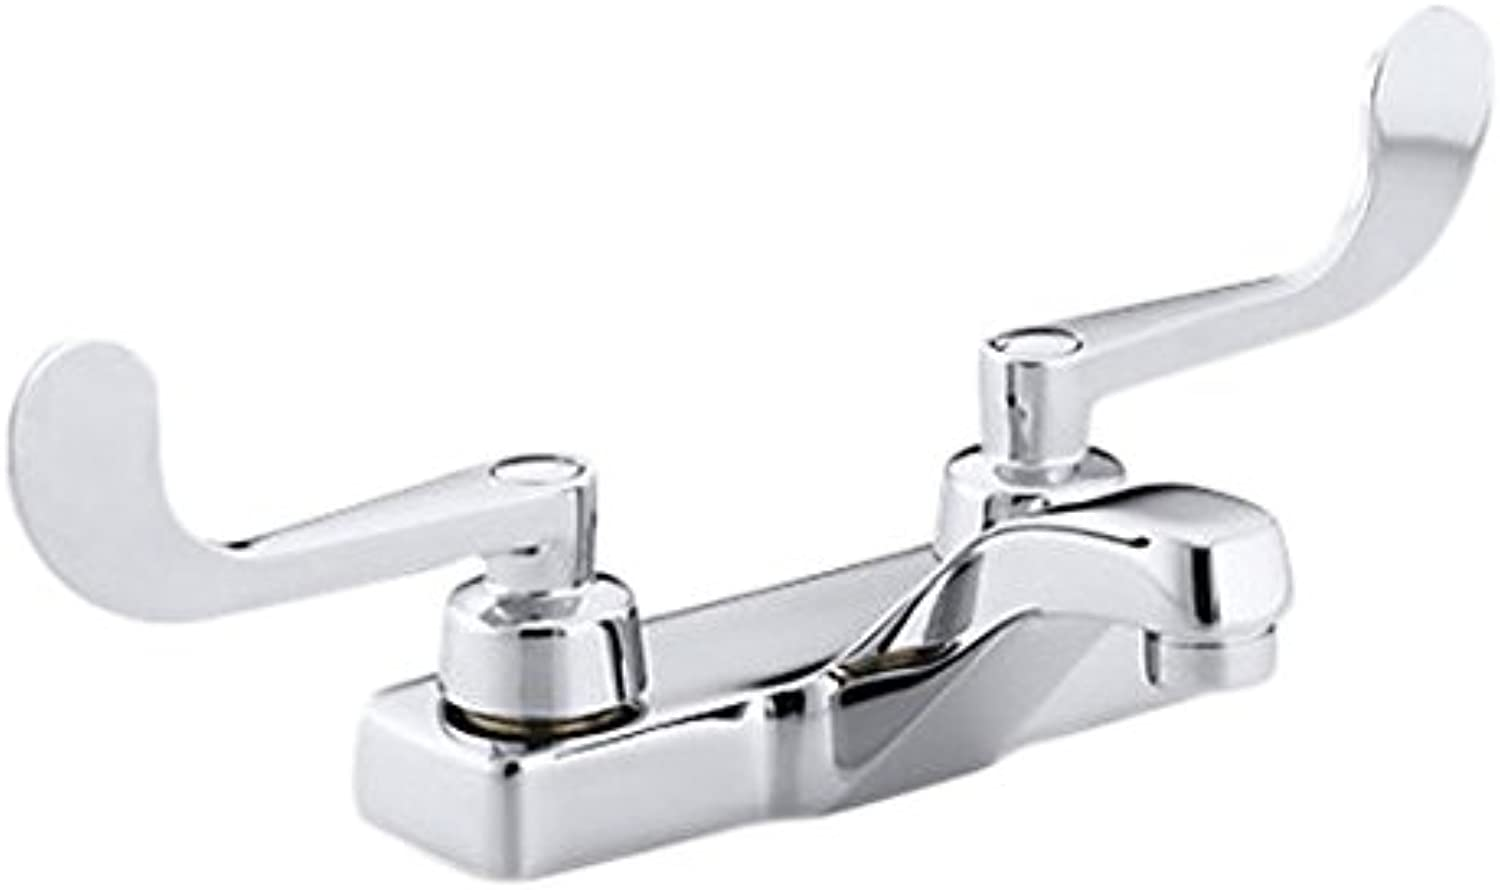 Kohler K-7404-5N-CP Triton 0.5 gpm centerset Commercial Bathroom Sink Faucet with wristblade Lever Handles, Drain not Included Polished Chrome